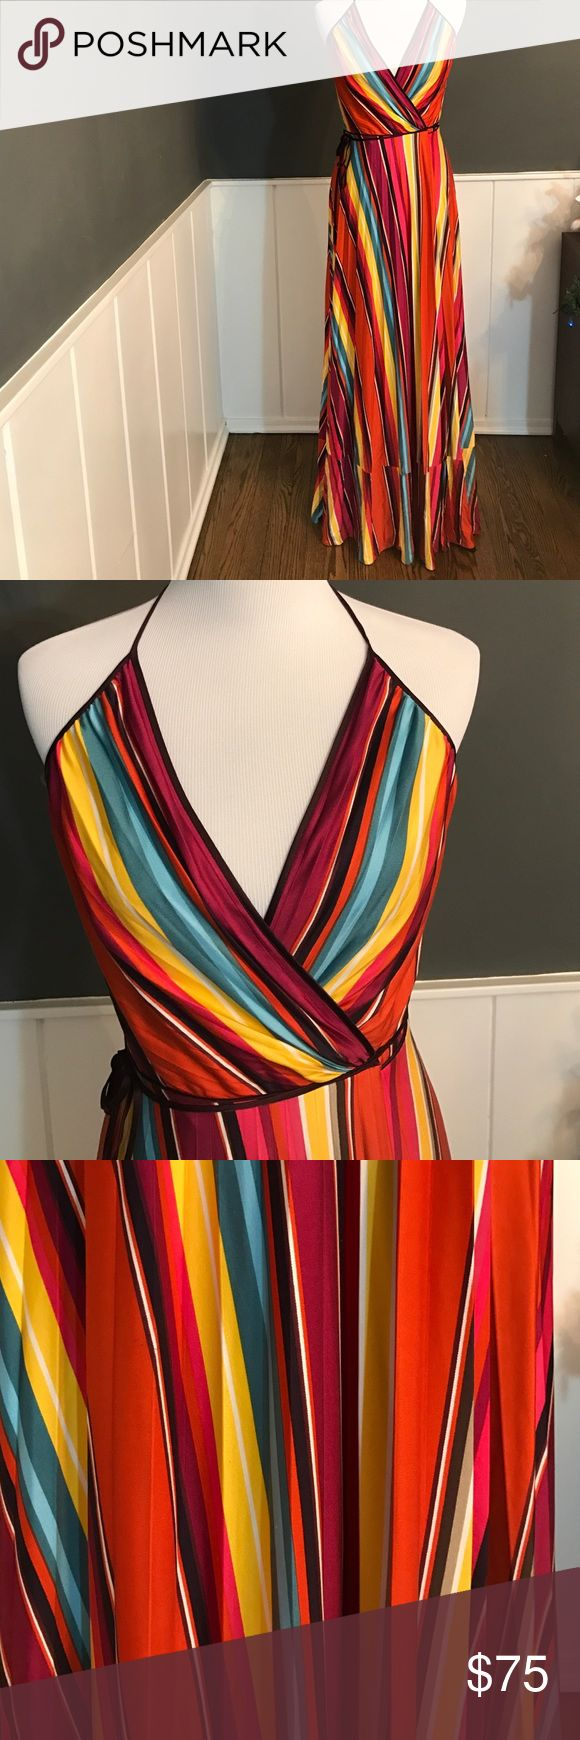 LAUNDRY dress Multi color wrap dress. Soft pleats in the fabric that add texture. Neck is adjustable tie and wrap as well. 100% silk. Never worn. Laundry by Shelli Segal Dresses Maxi